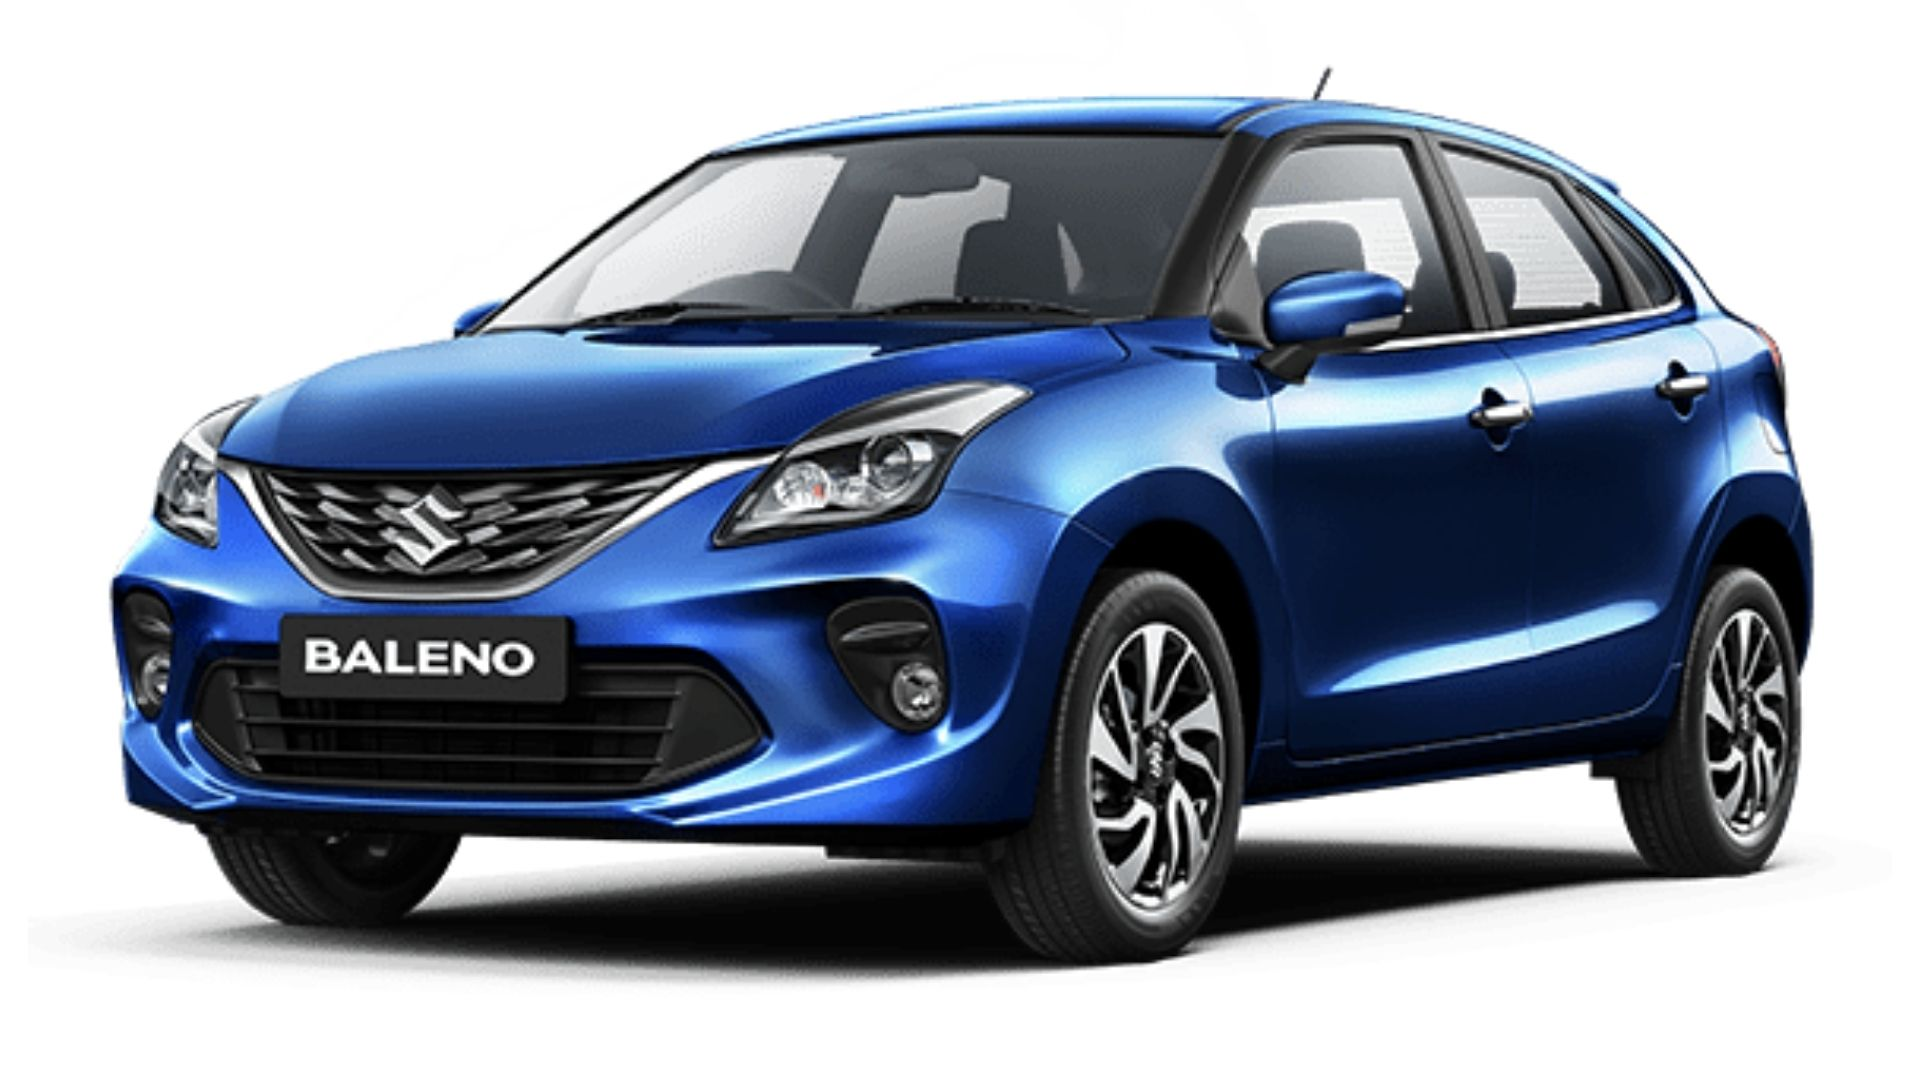 Maruti Suzuki Baleno Safety Features